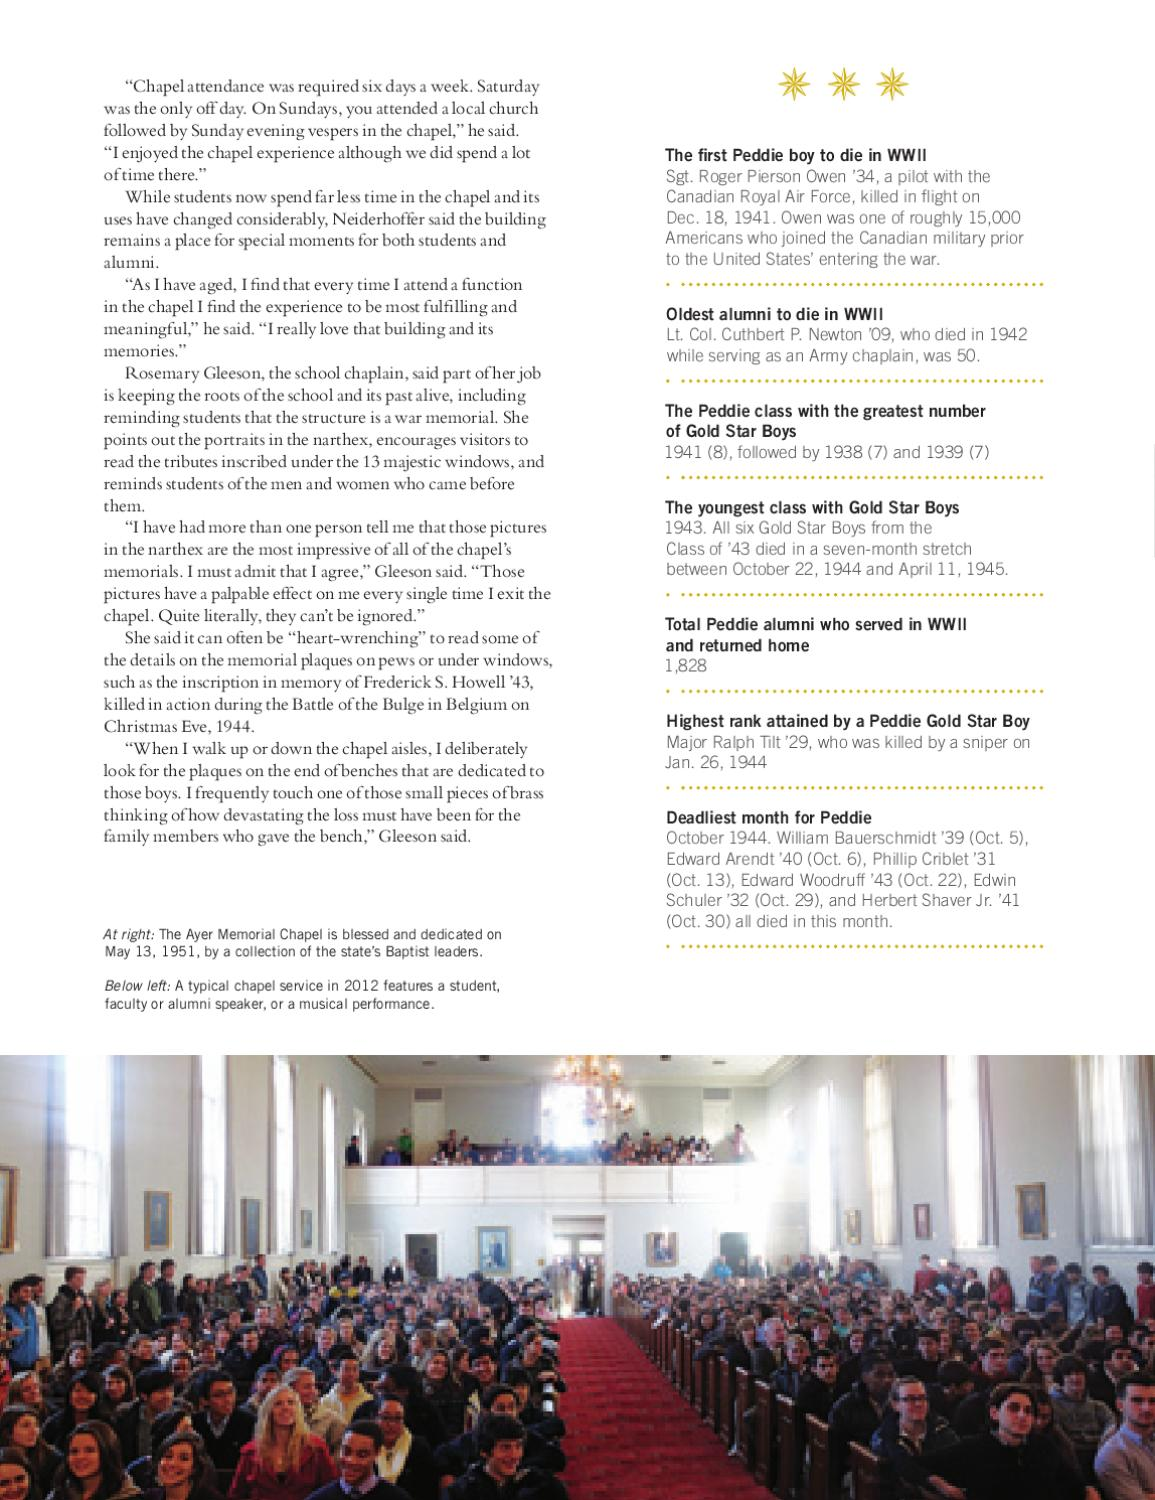 Chronicle Spring 2012